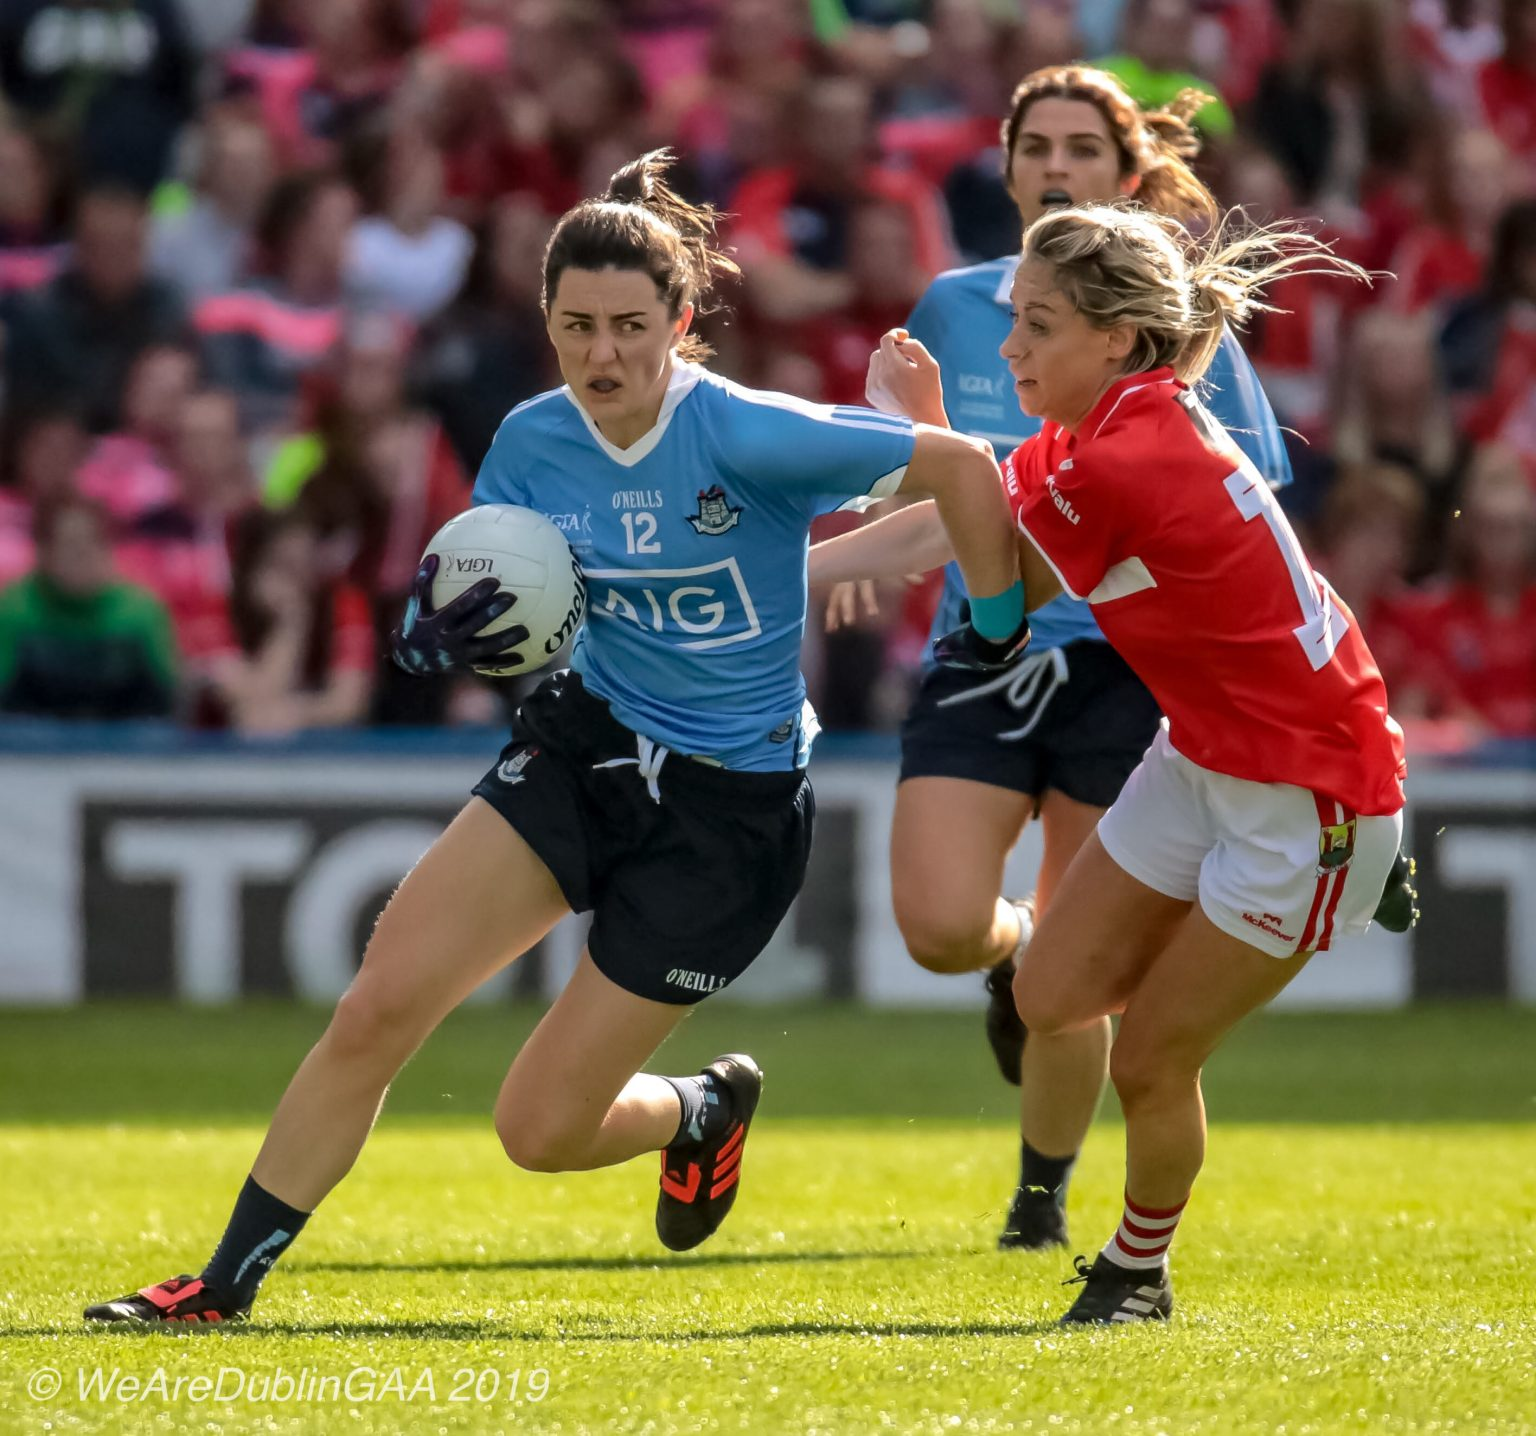 Dublin Ladies Footballer in a sky blue jersey and navy shorts is tackled by a Cork player in a Red Jersey and white shorts both sides meet this weekend in the Lidl NFL Semi Final